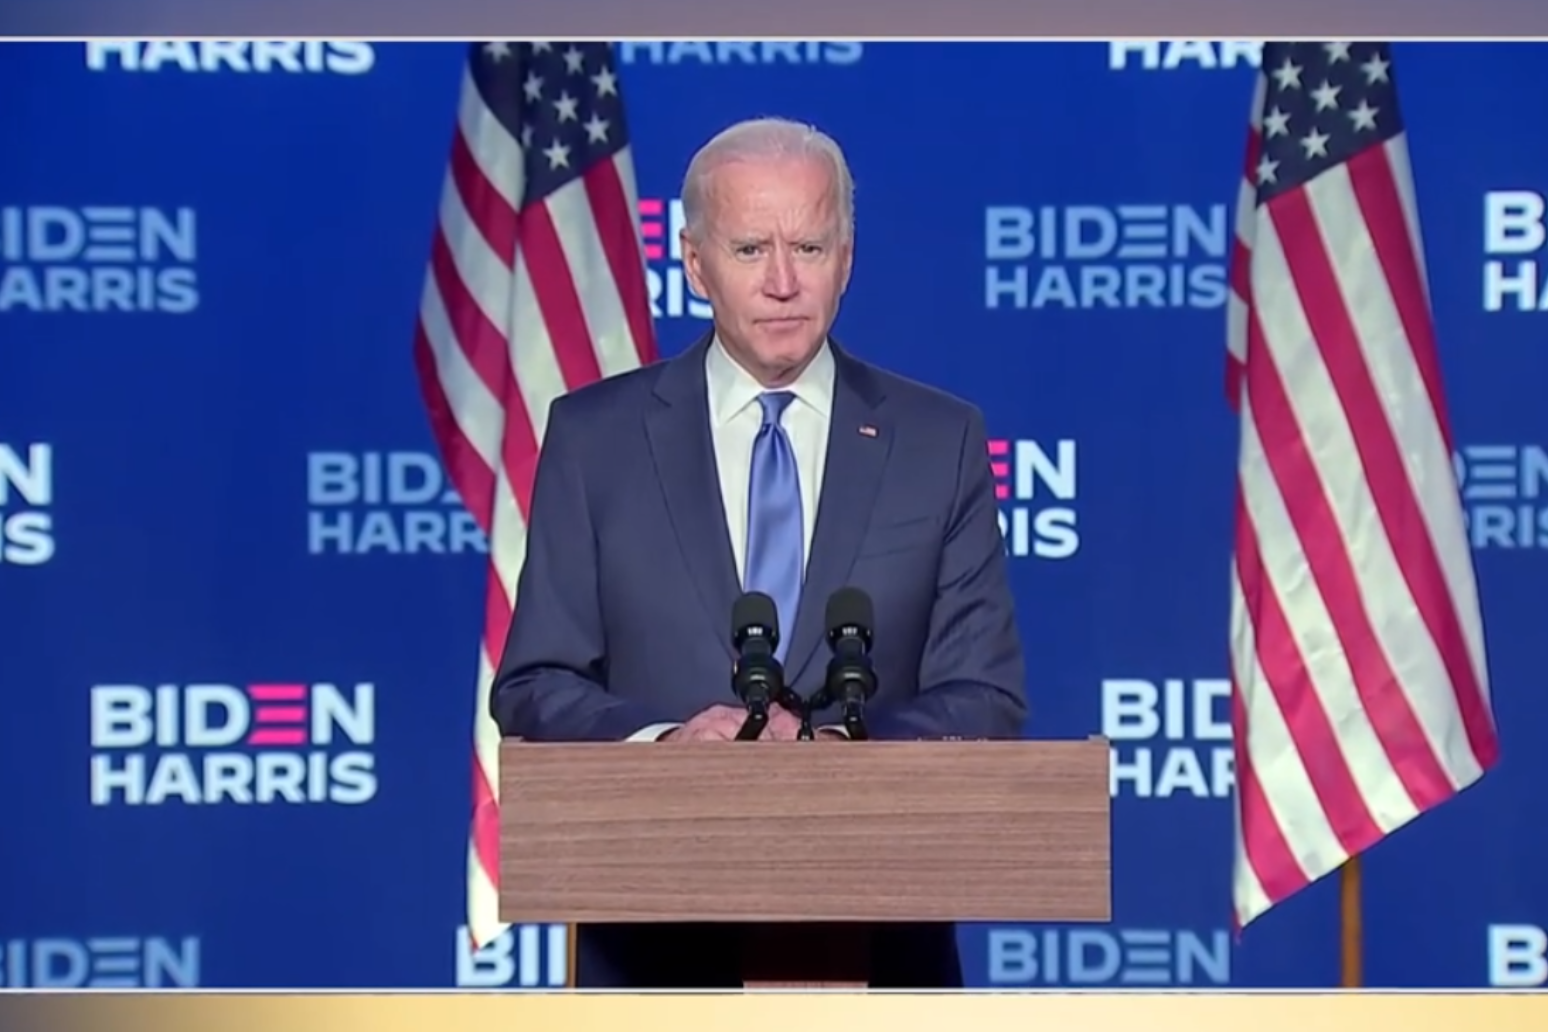 Reaction as Biden is declared the projected winner of the US Election